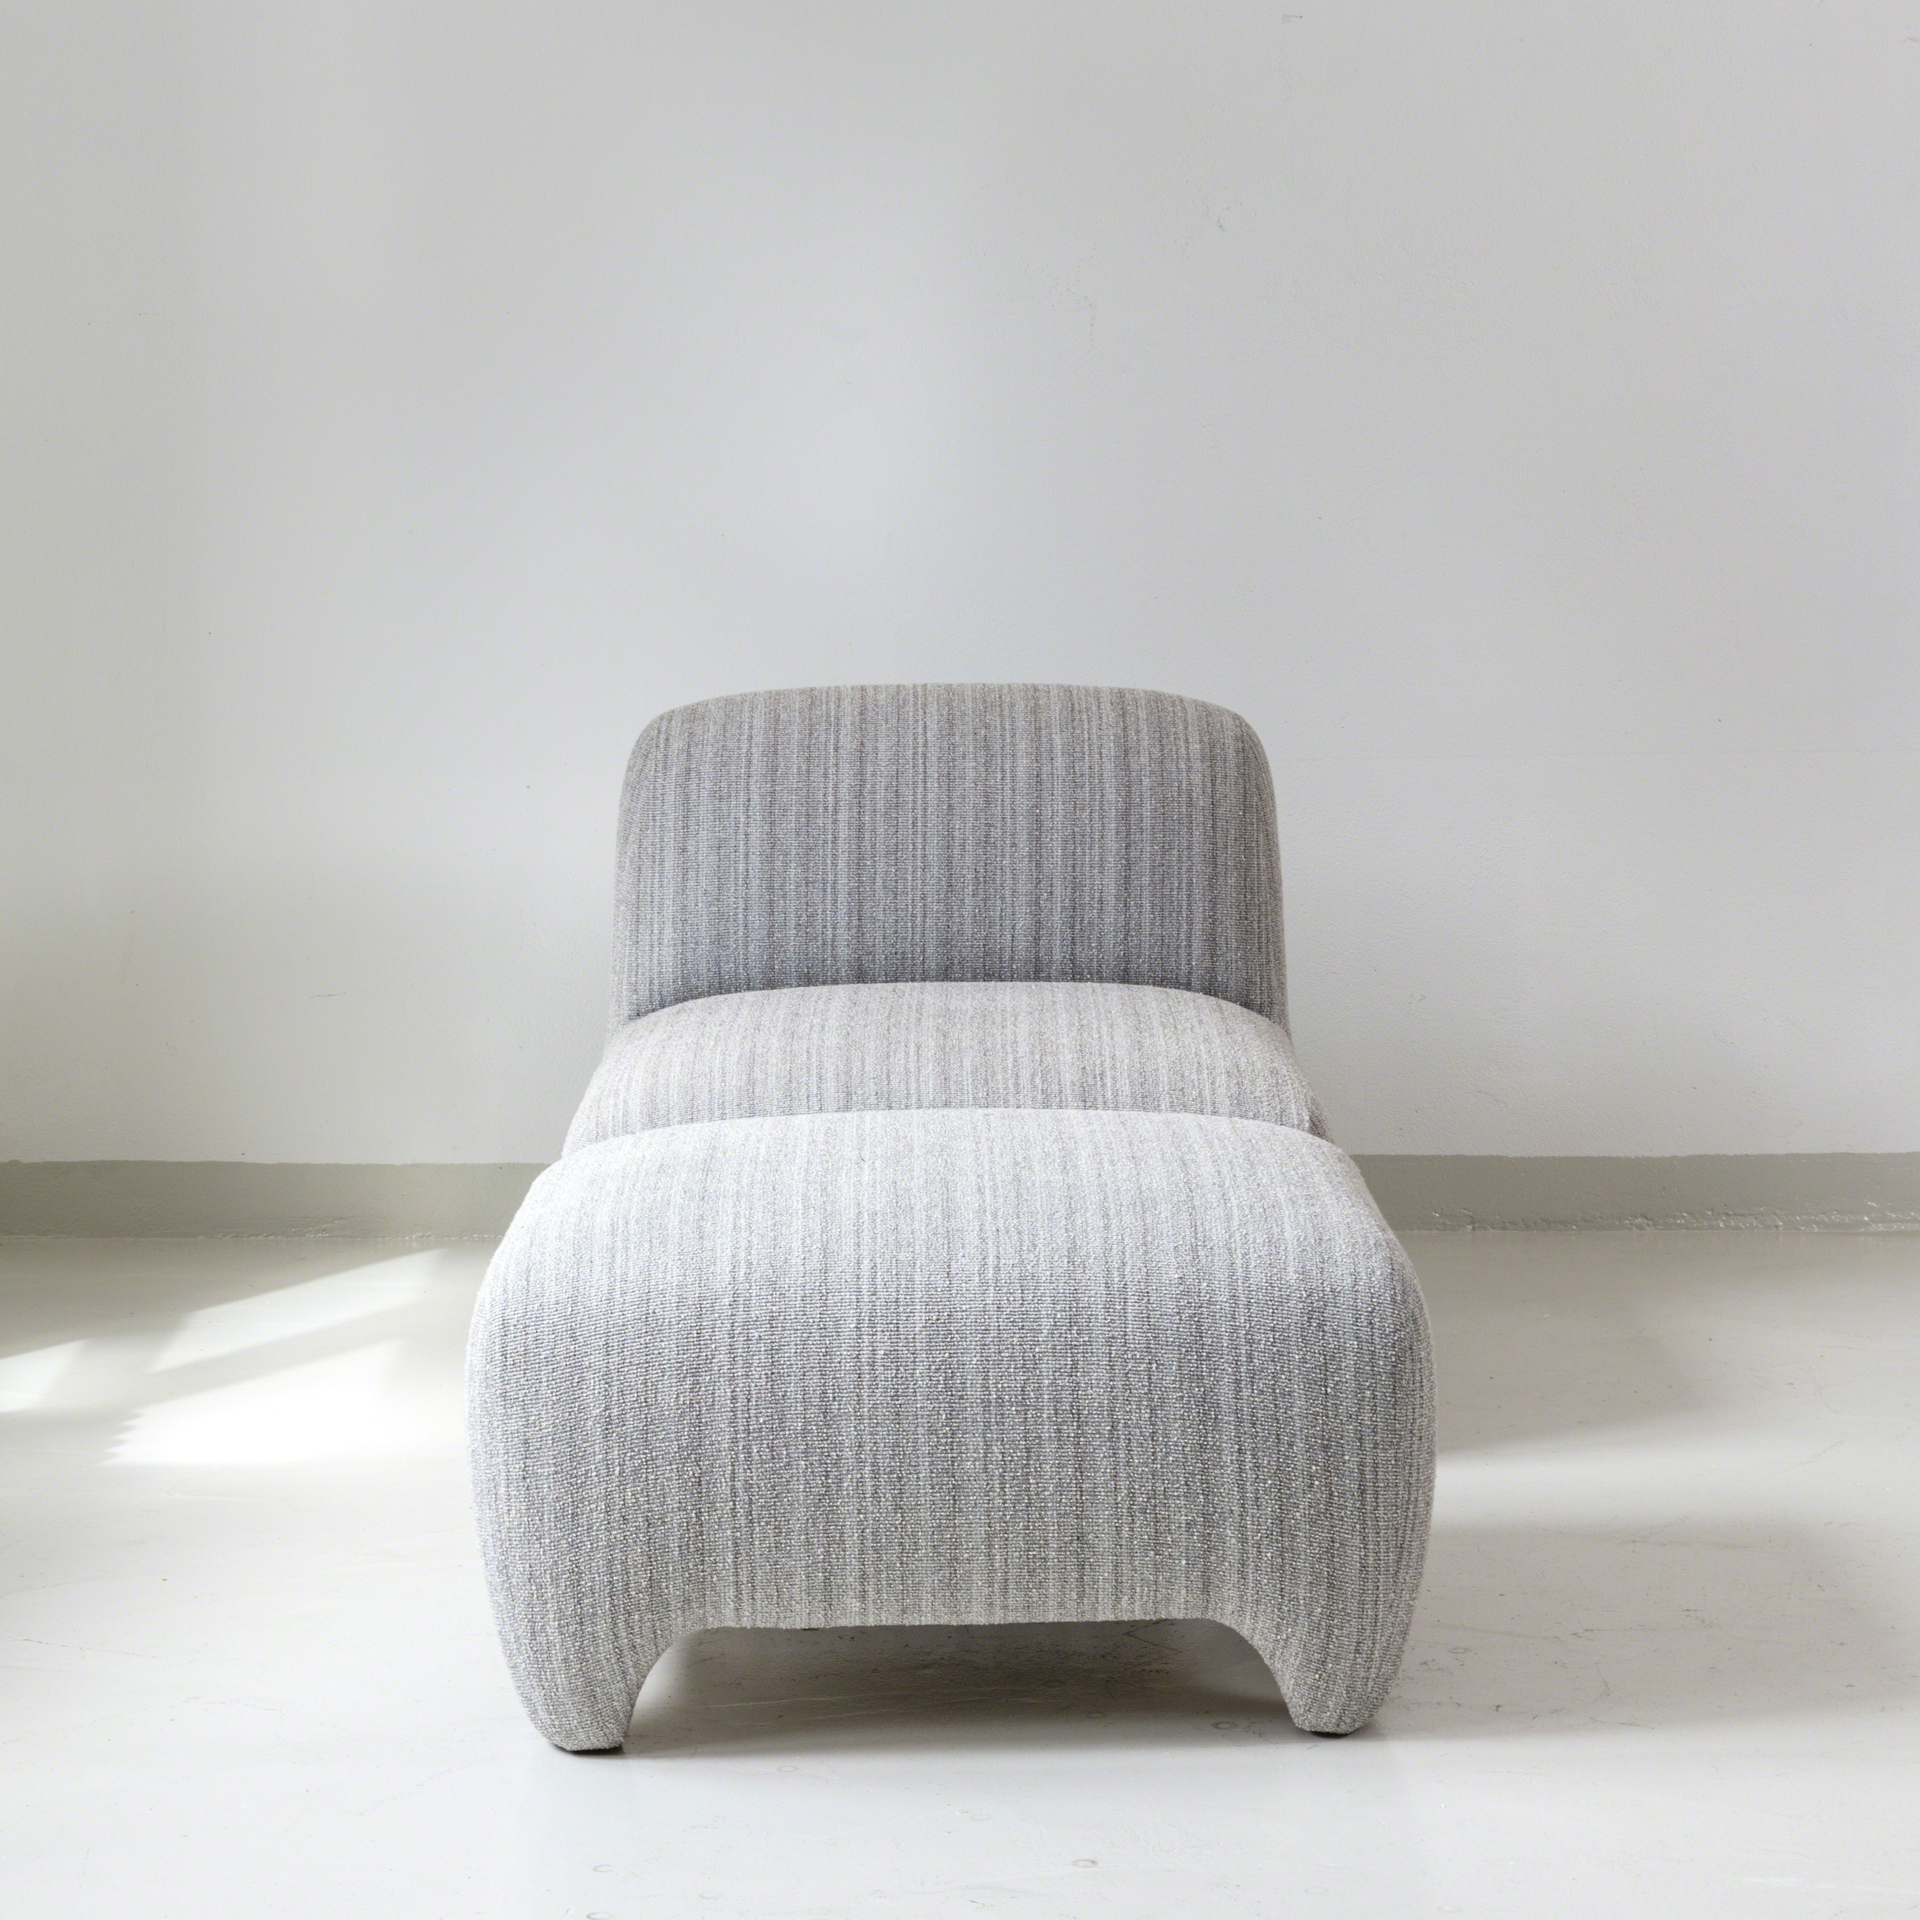 Slipper chair and ottoman by Tinatin Kilaberidze